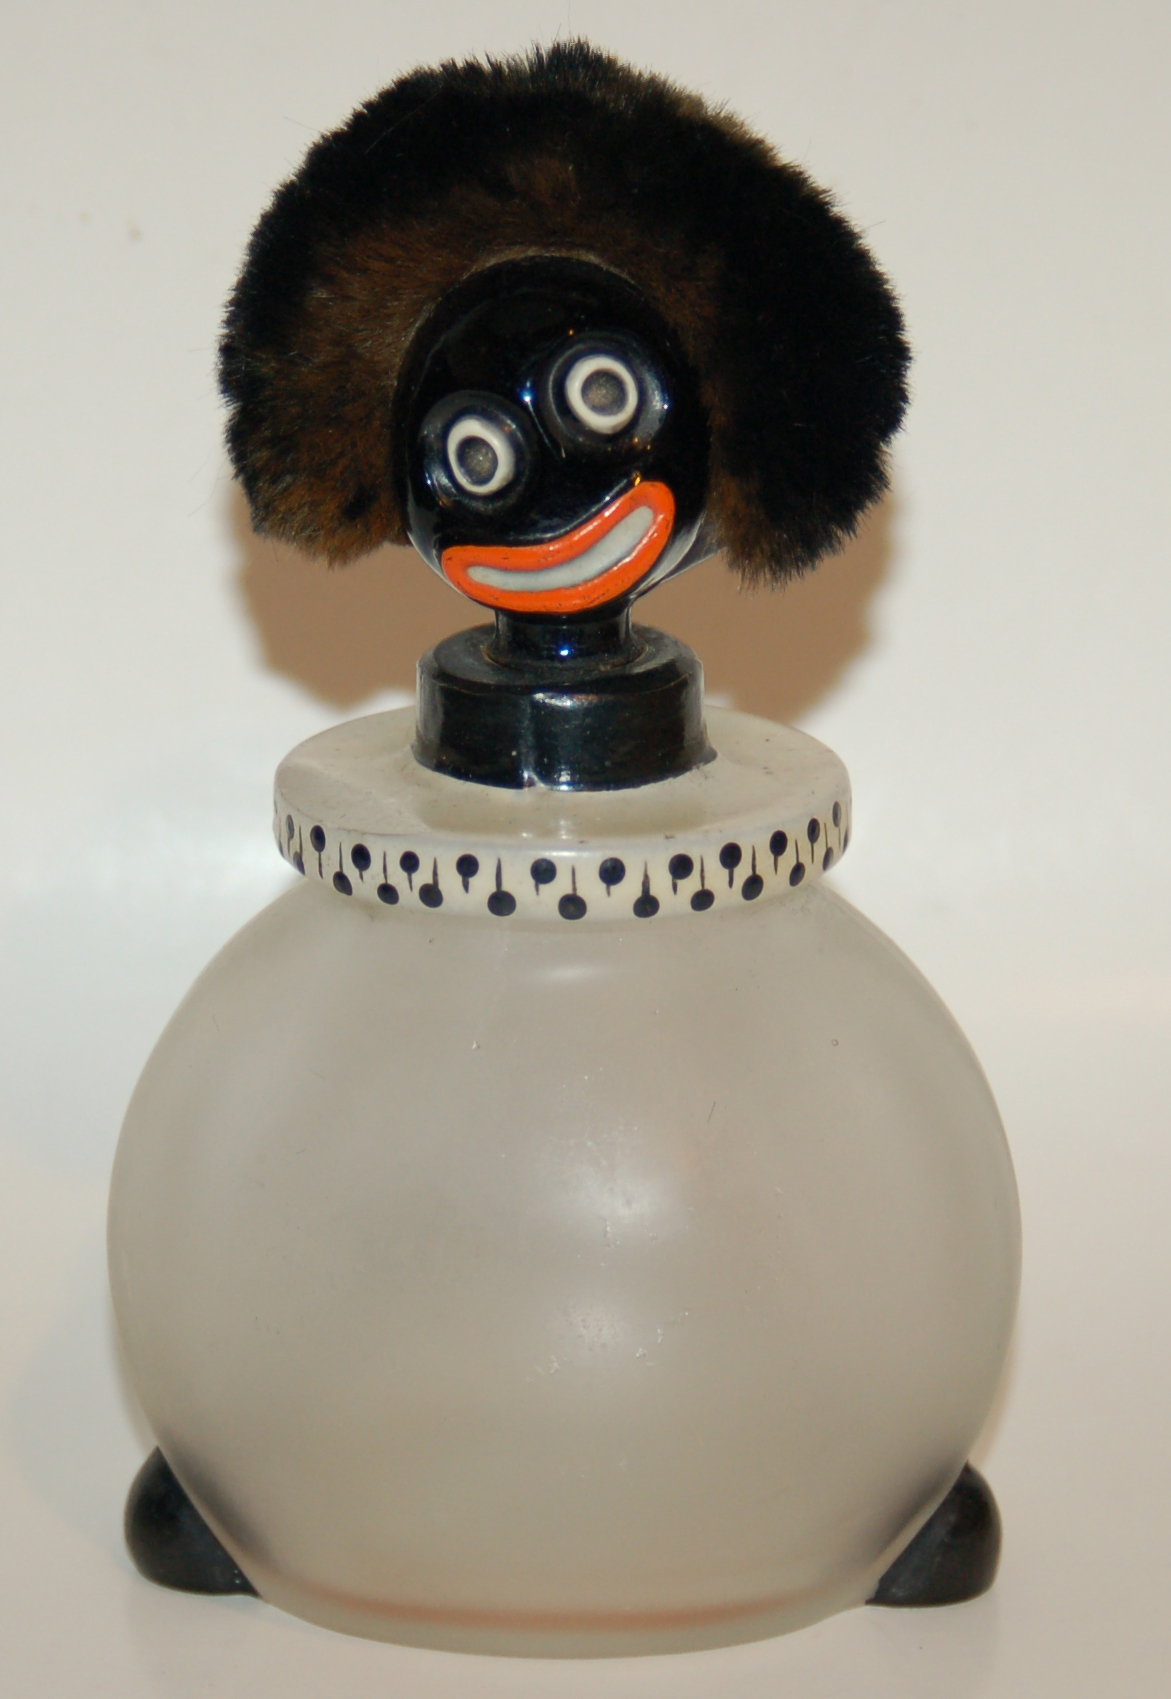 Bottle with golliwog head top